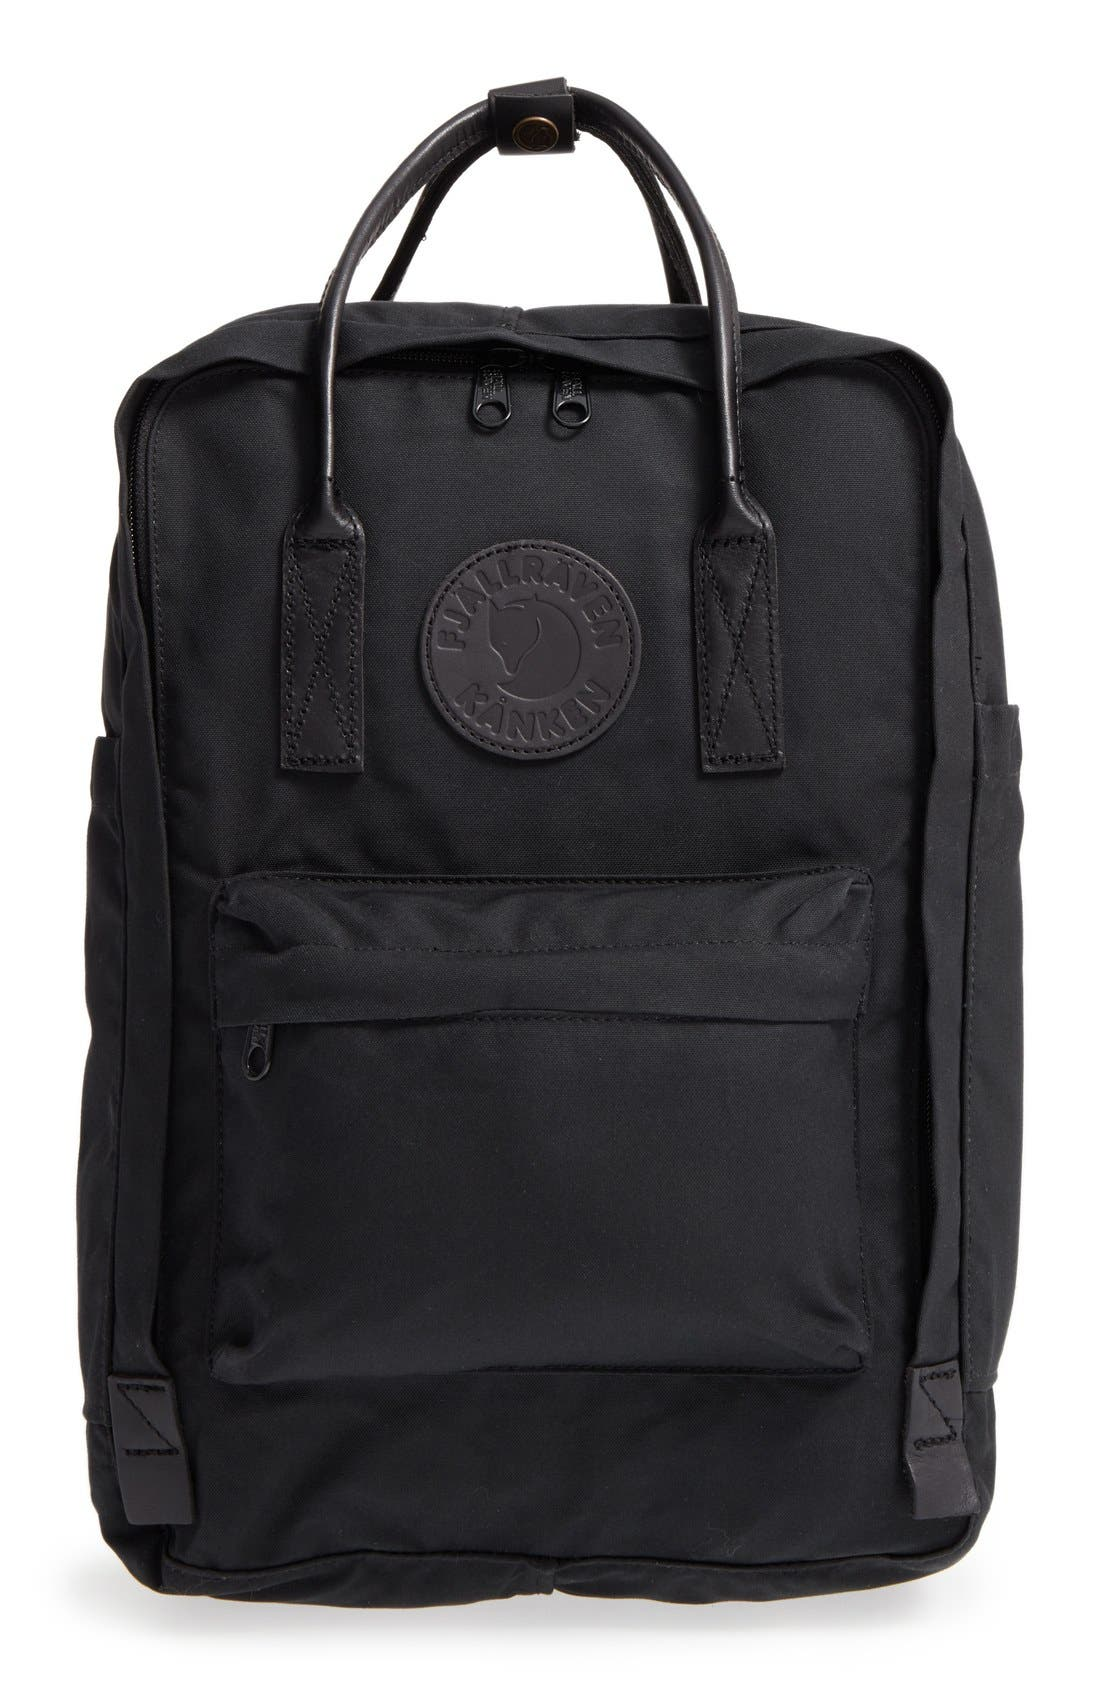 FJÄLLRÄVEN Kånken No. 2 Laptop Backpack, Main, color, 001